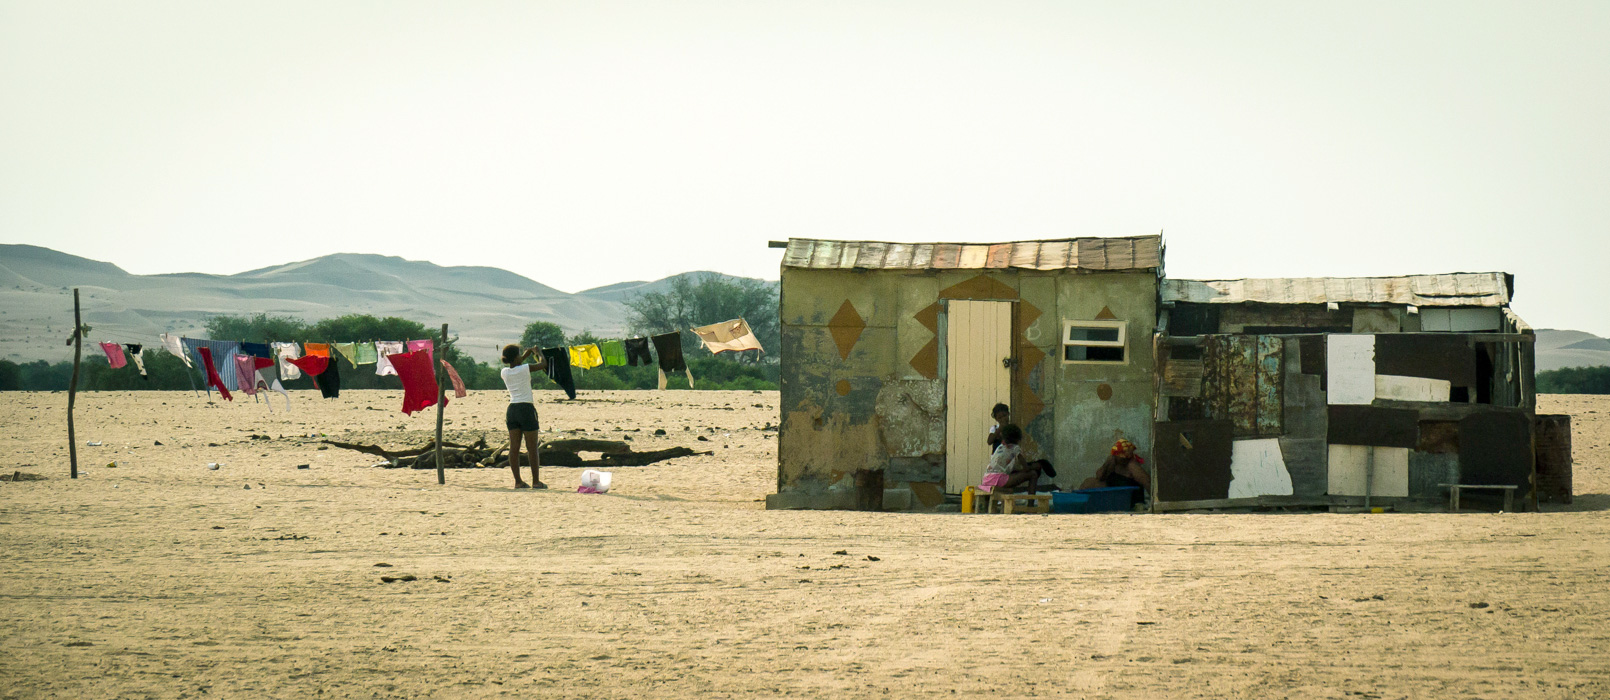 Putting out the washing in the Namib Desert. This is a typical eclectic house, found in the river communities in South-Western Namibia. The people here have ingenious ways of building with whatever materials are available. The ultimate in recycling!